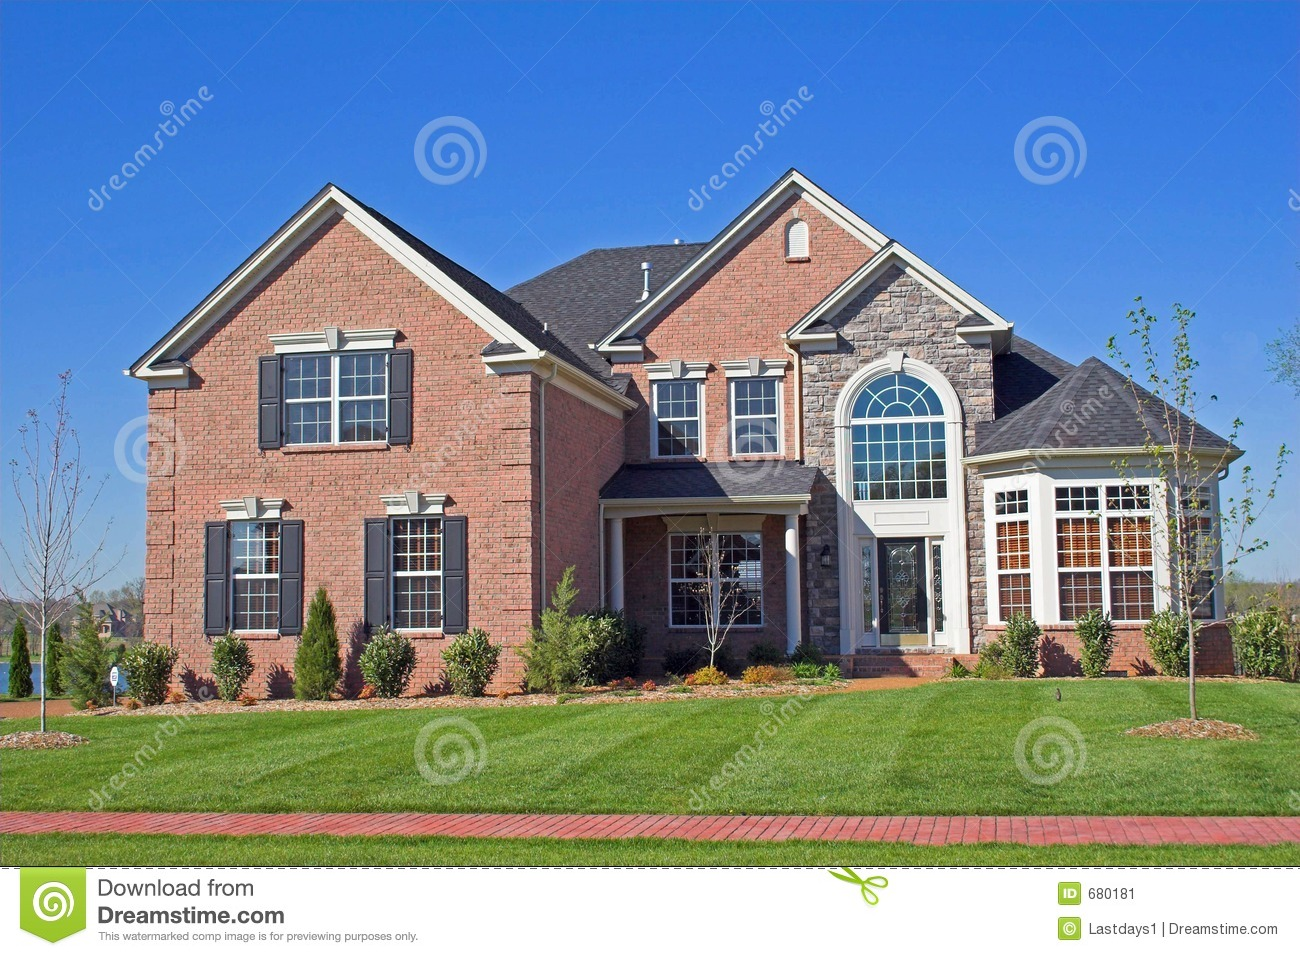 Beautiful homes series 1d stock image image 680181 - A beautiful home ...